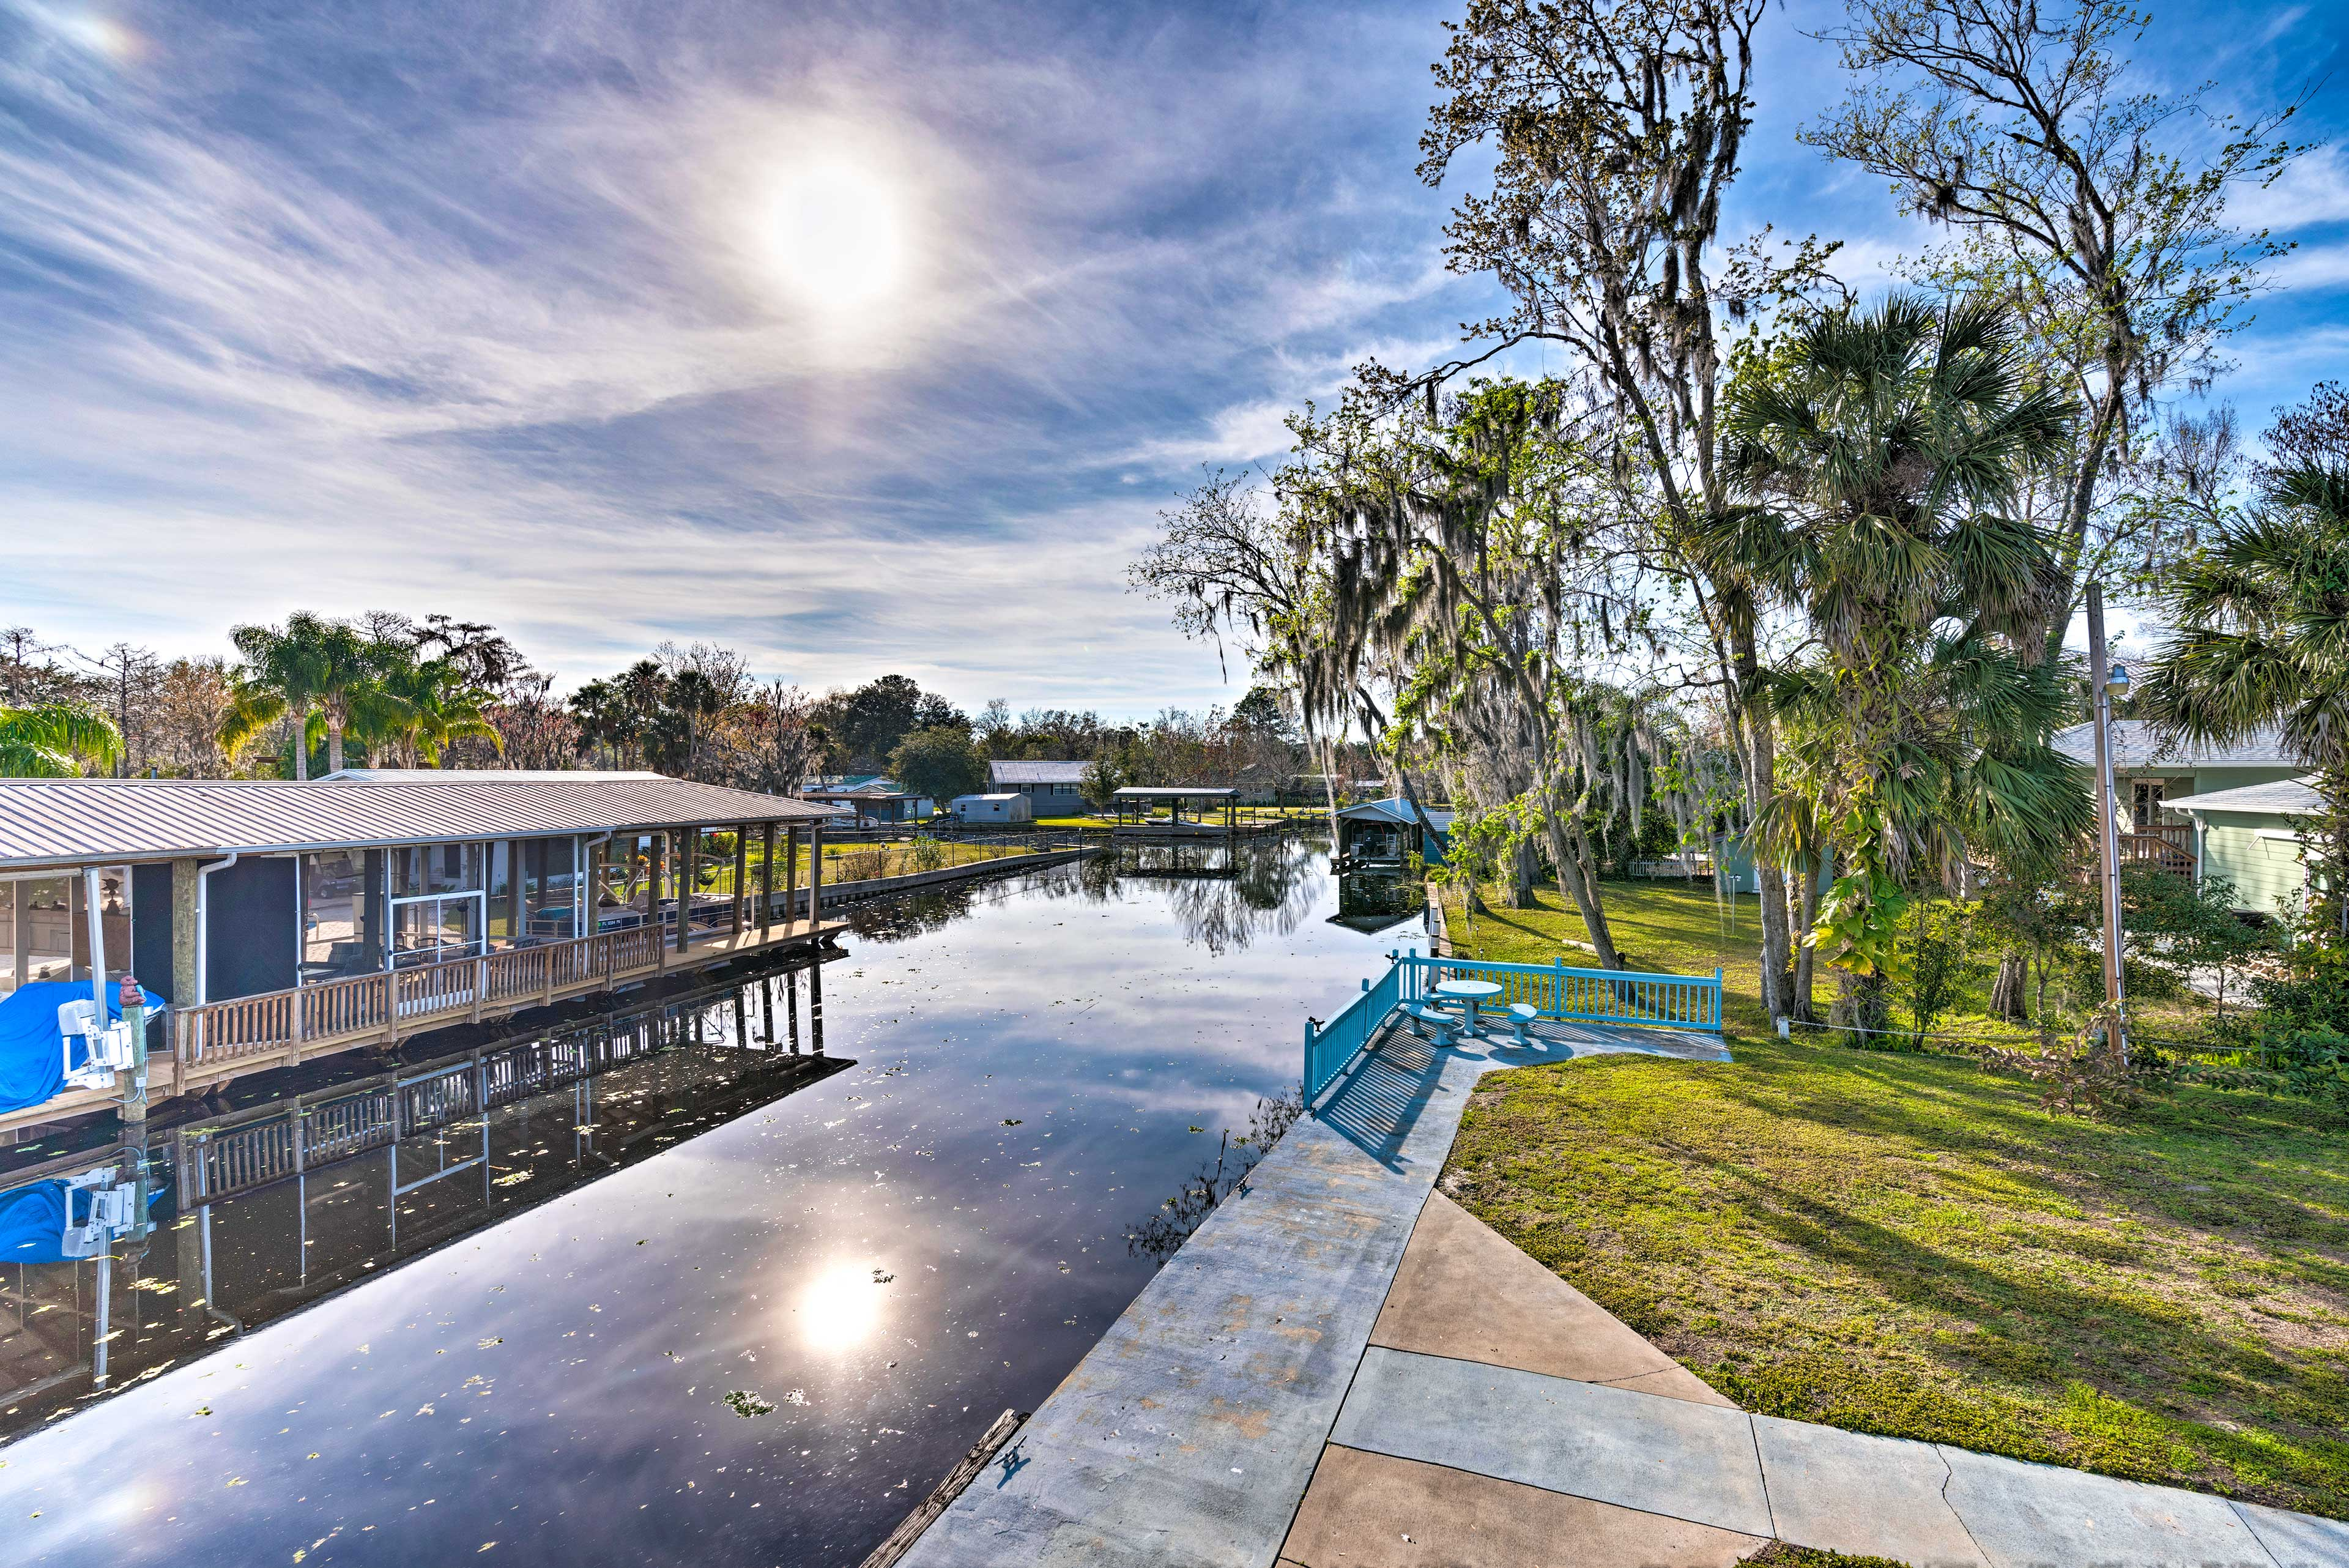 The property is nestled on a canal the leads straight to the St. Johns River.